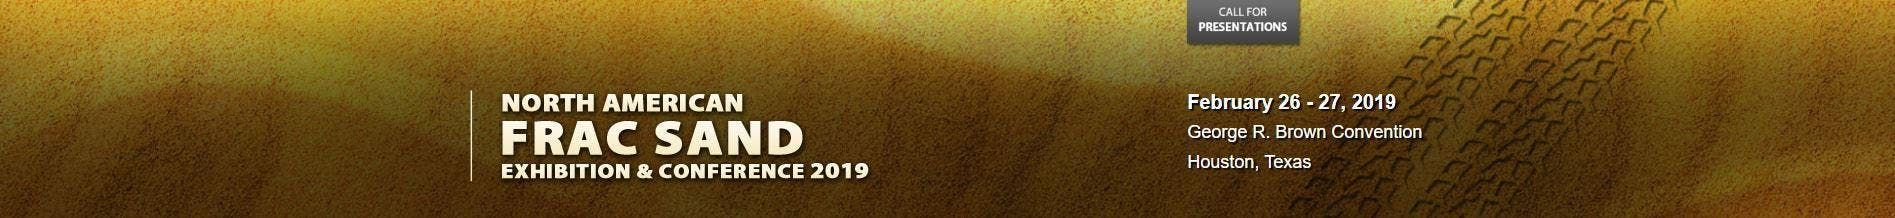 North American Frac Sand 2019 Exhibition and Conference